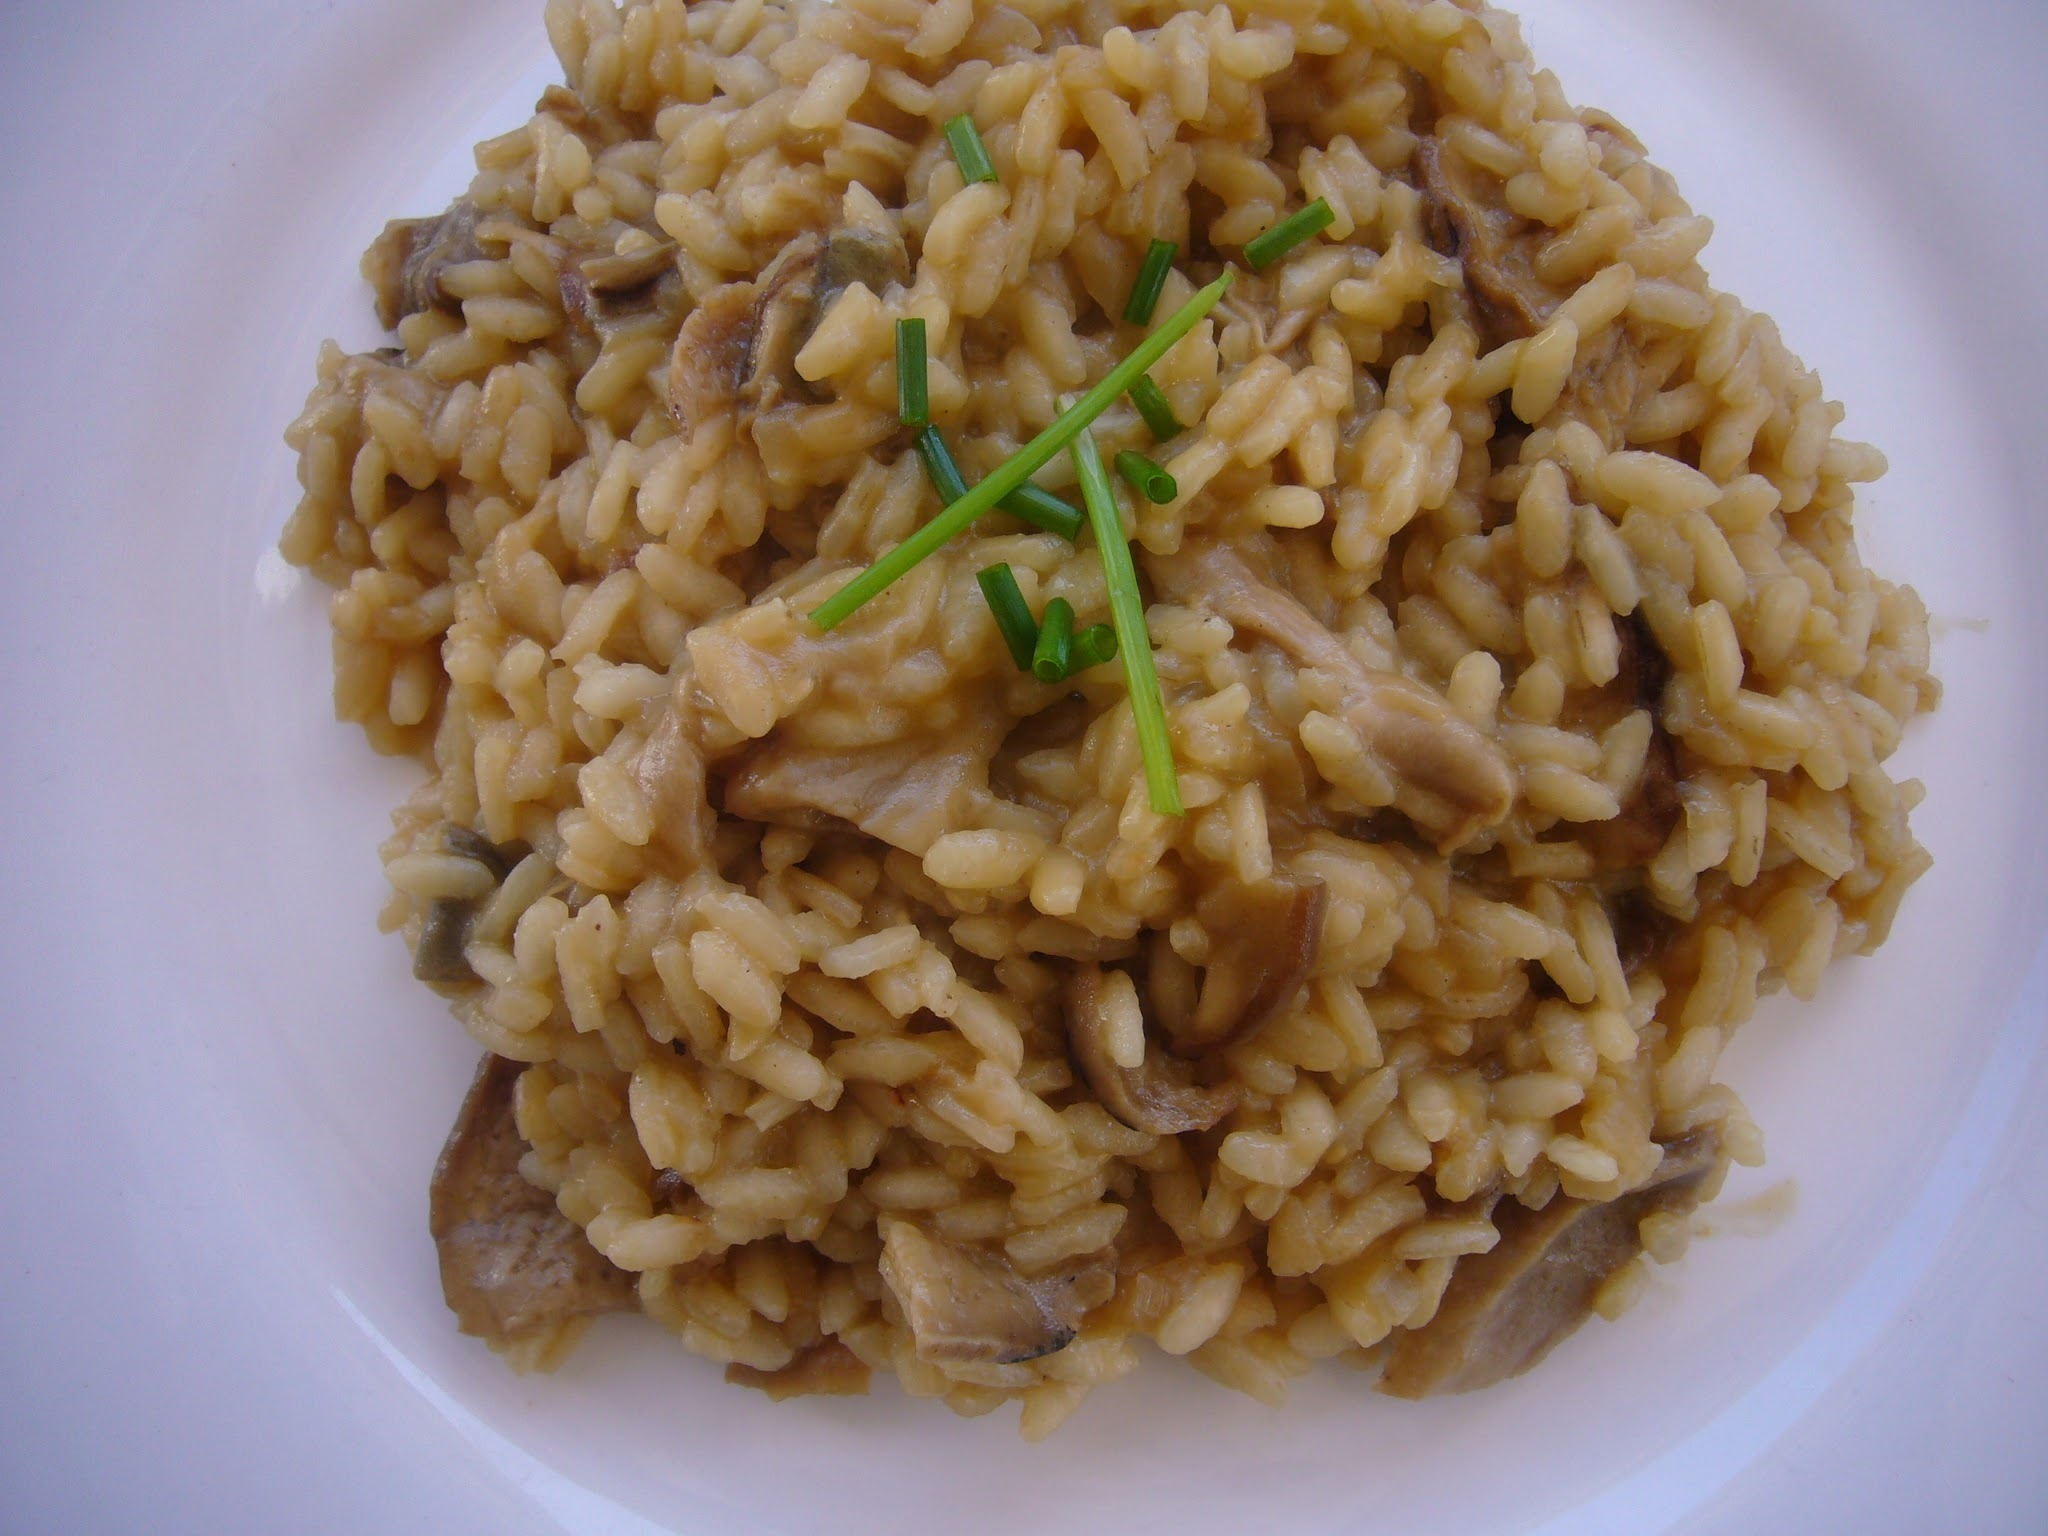 ARRÒS AMB CEPS - RICE WITH FUNGHI PORCINI